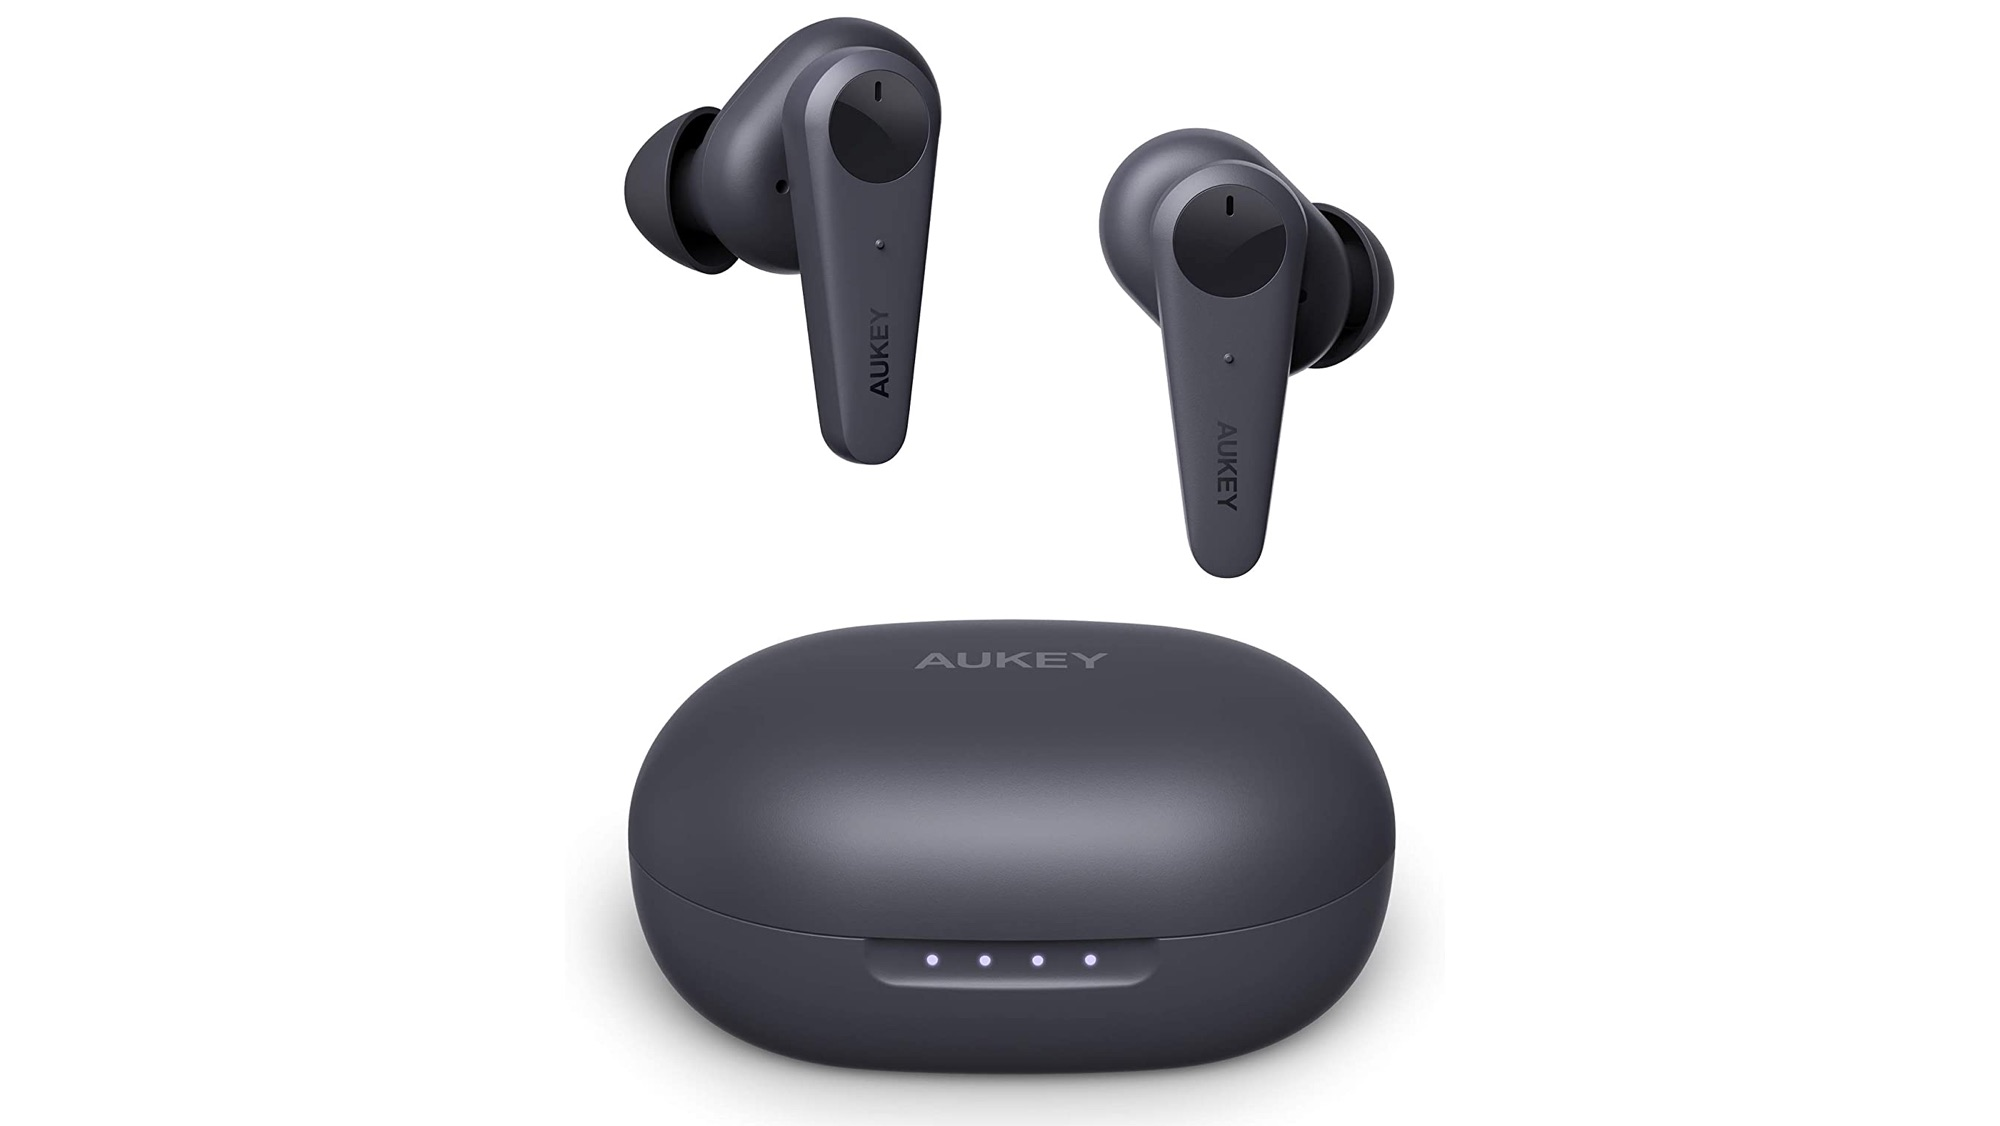 aukey true wireless earbuds 1